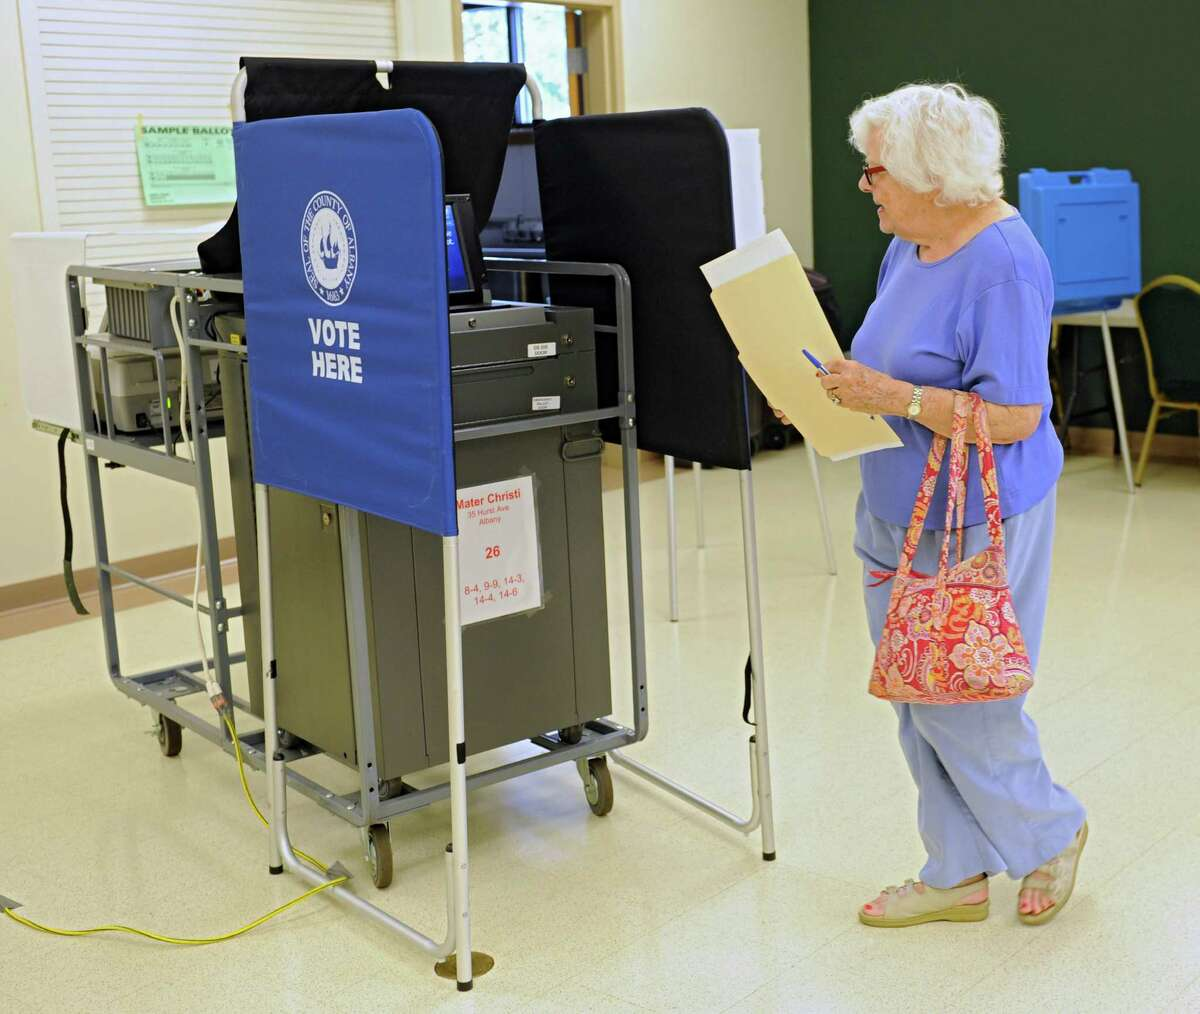 Margaret Sanders of Albany votes in Tuesday's primary at the Mater Christi Parish Center polling place, Sept. 9, 2014 in Albany, N.Y. (Lori Van Buren / Times Union)